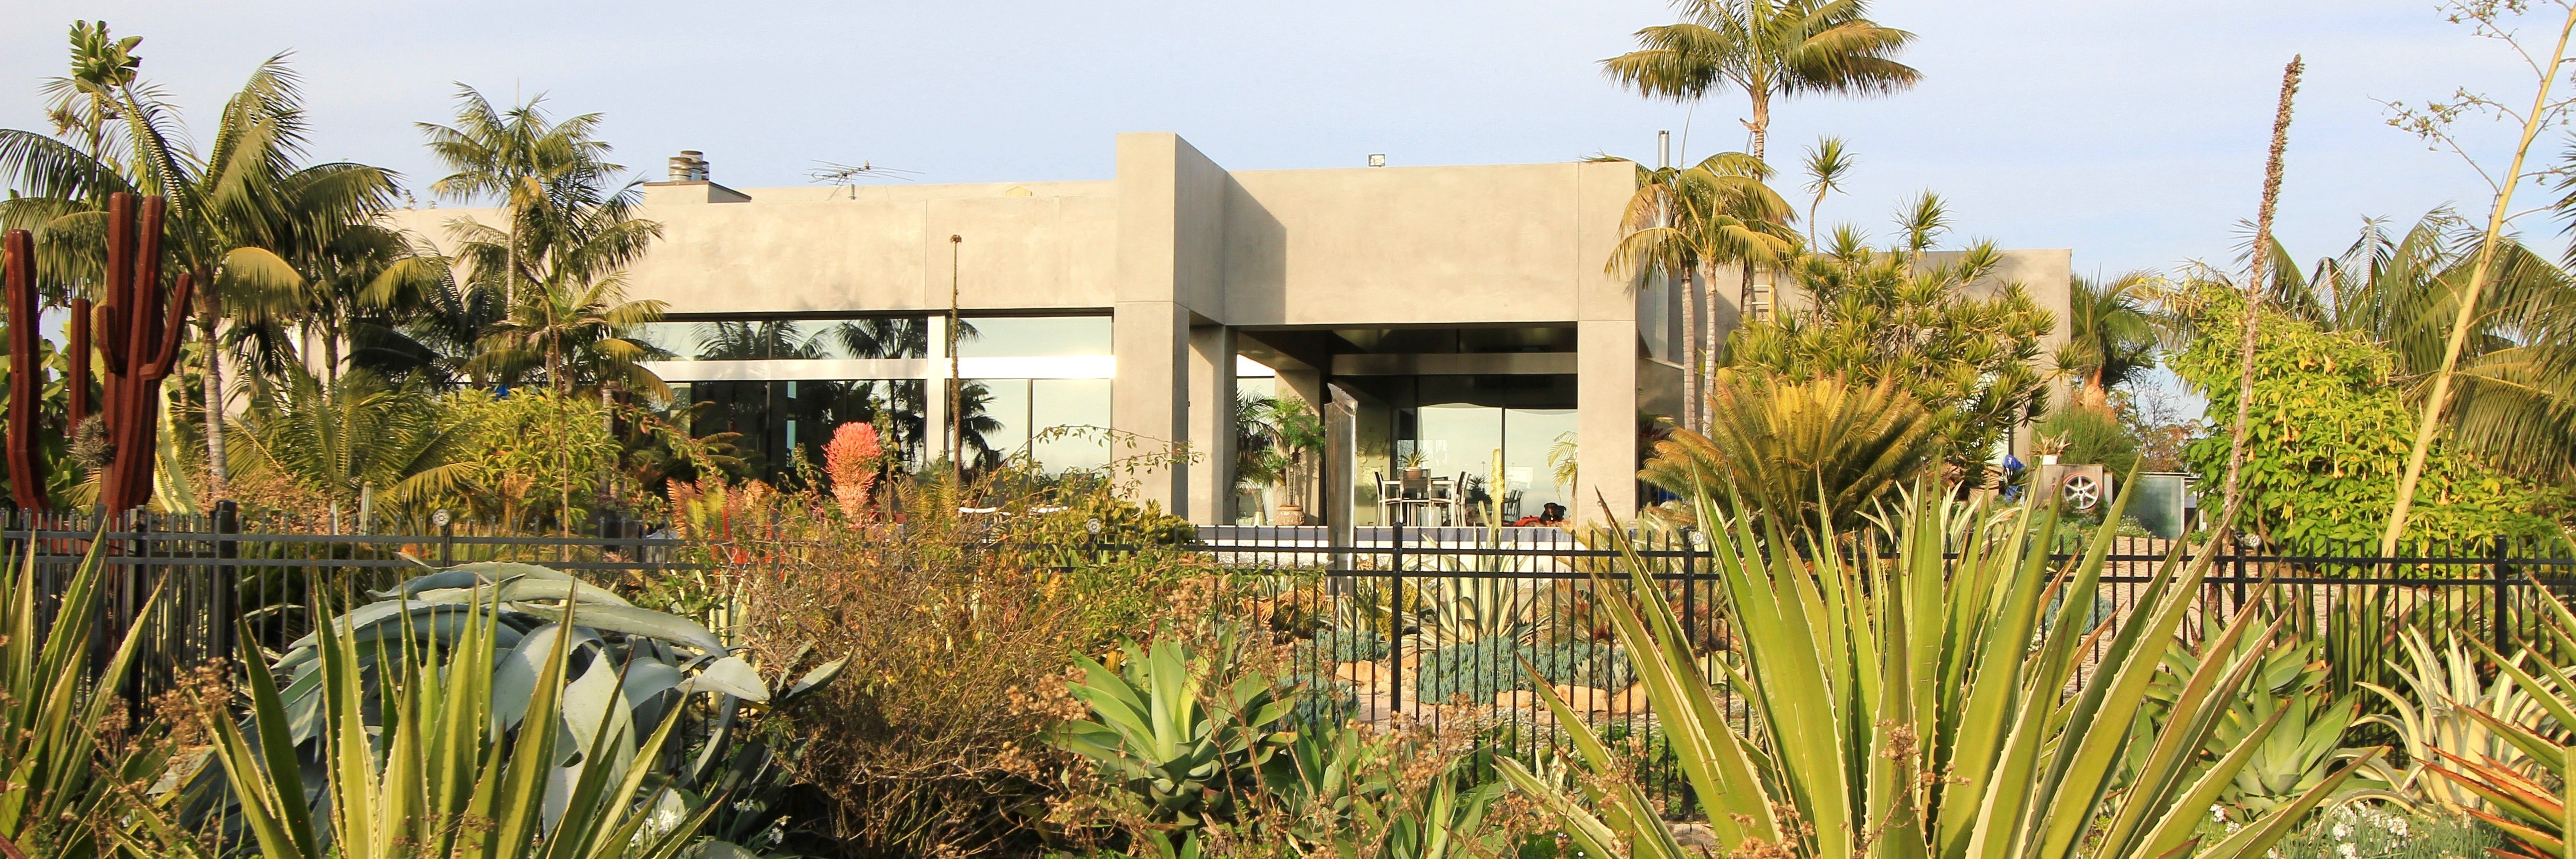 Santa Ana Heights is a housing community located in the city of Newport Beach, CA